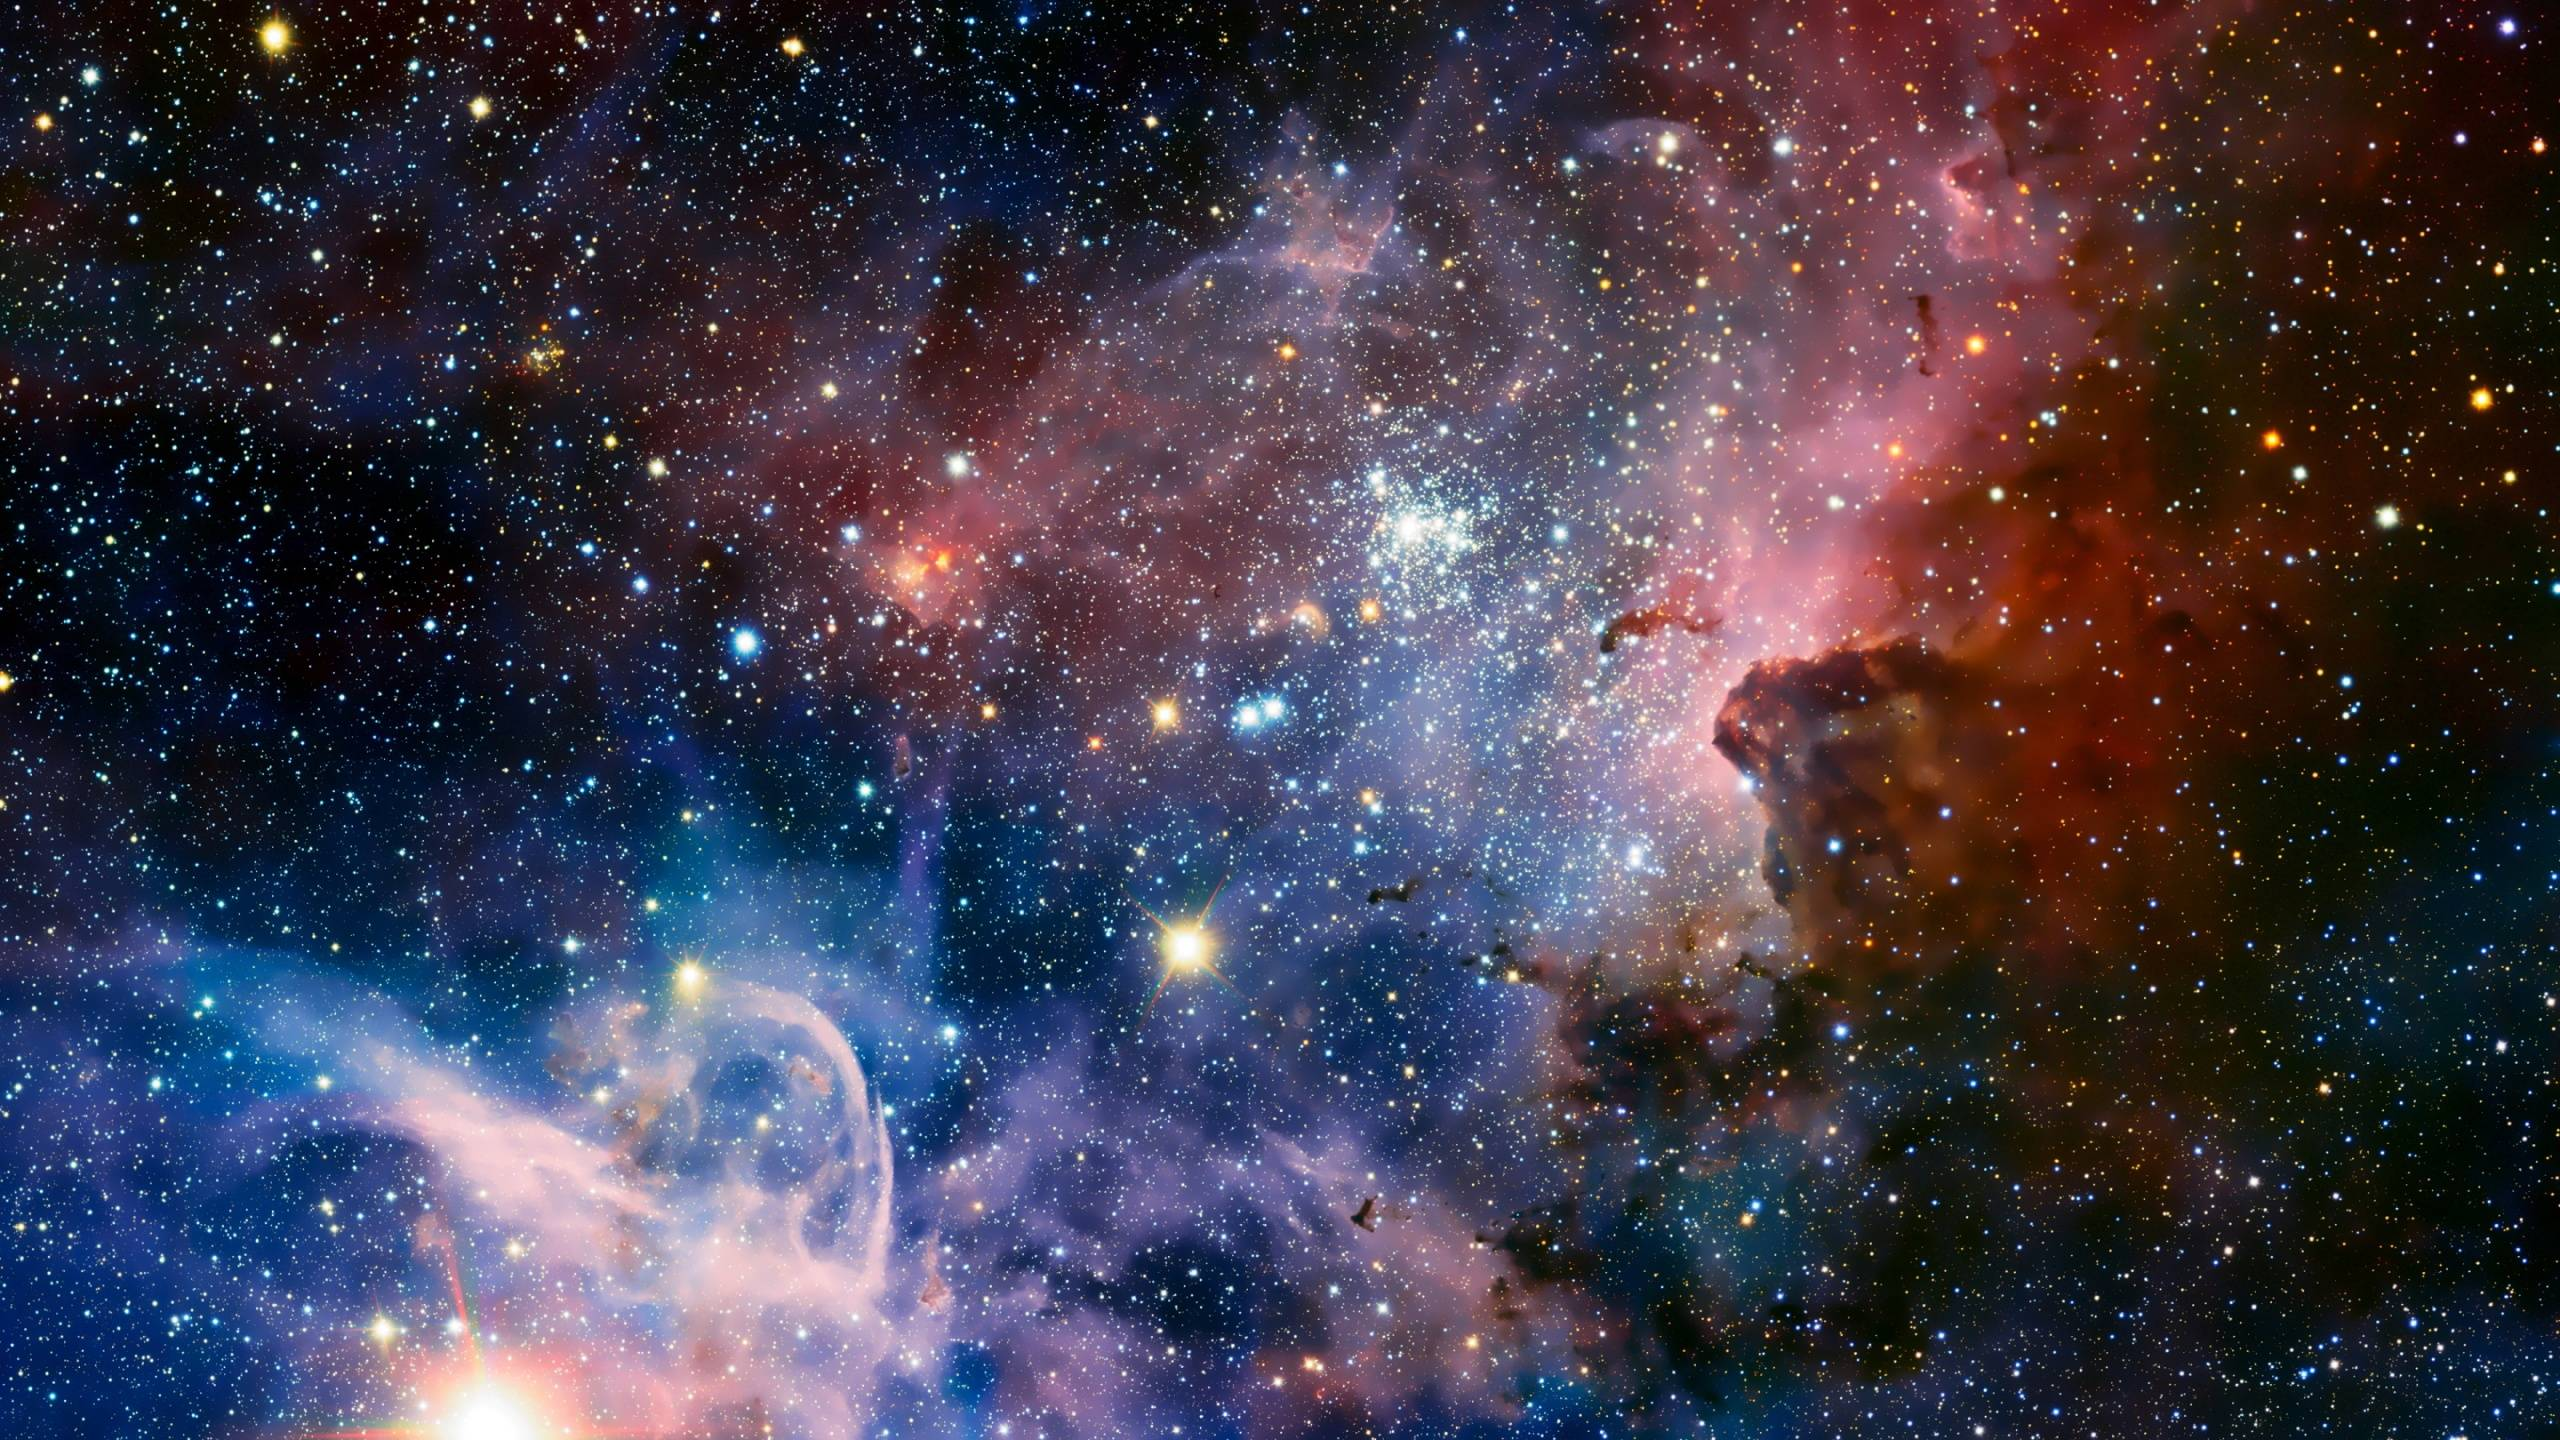 Space Stars Backgrounds Wallpapers Image & Pictures